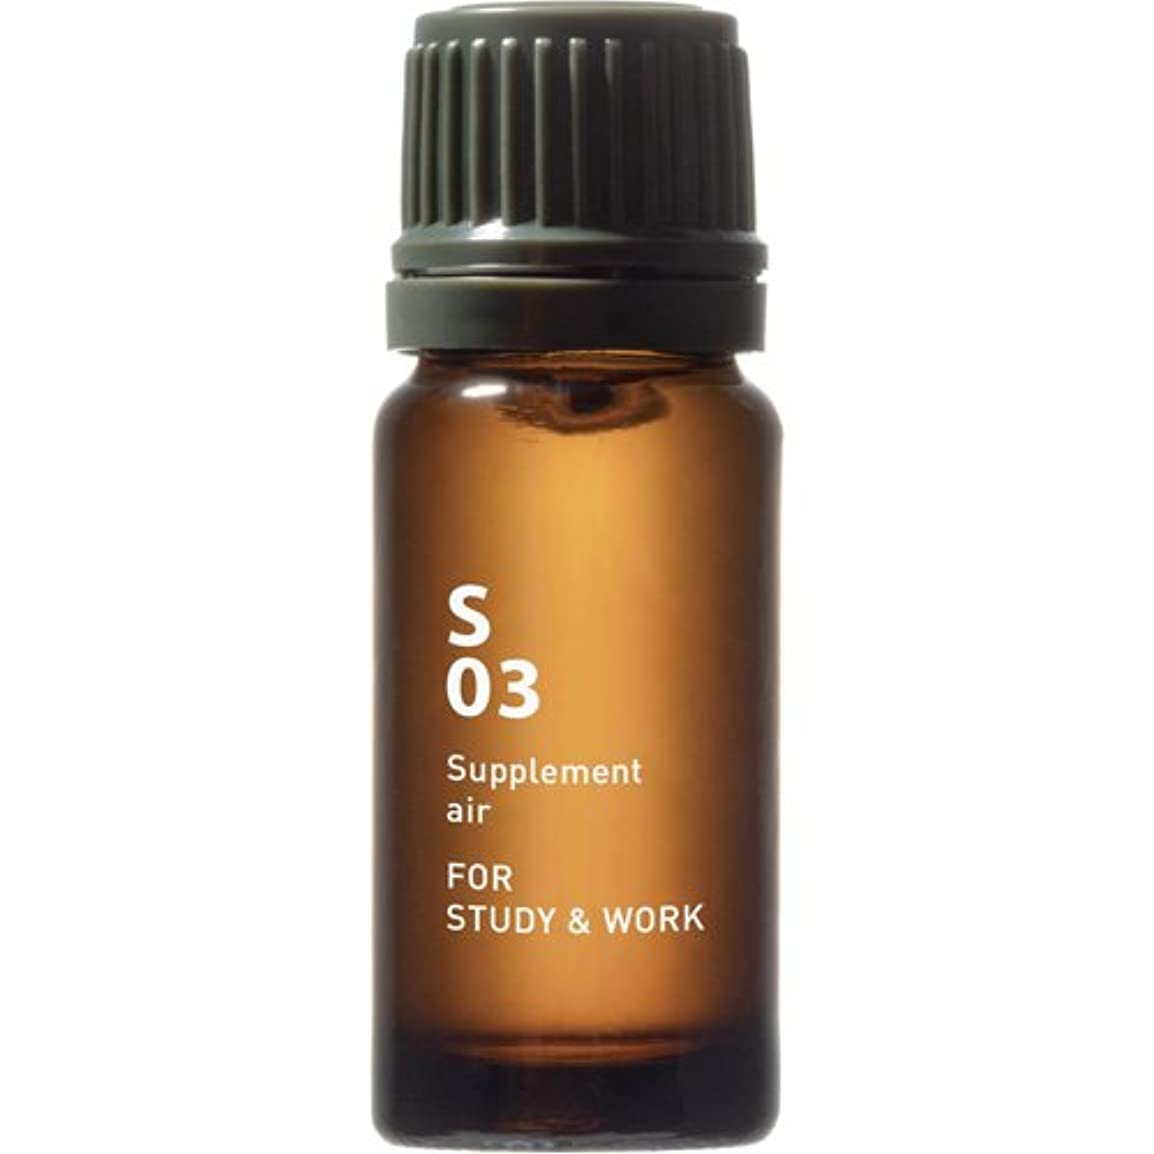 伝記粗い発生S03 FOR STUDY & WORK Supplement air 10ml